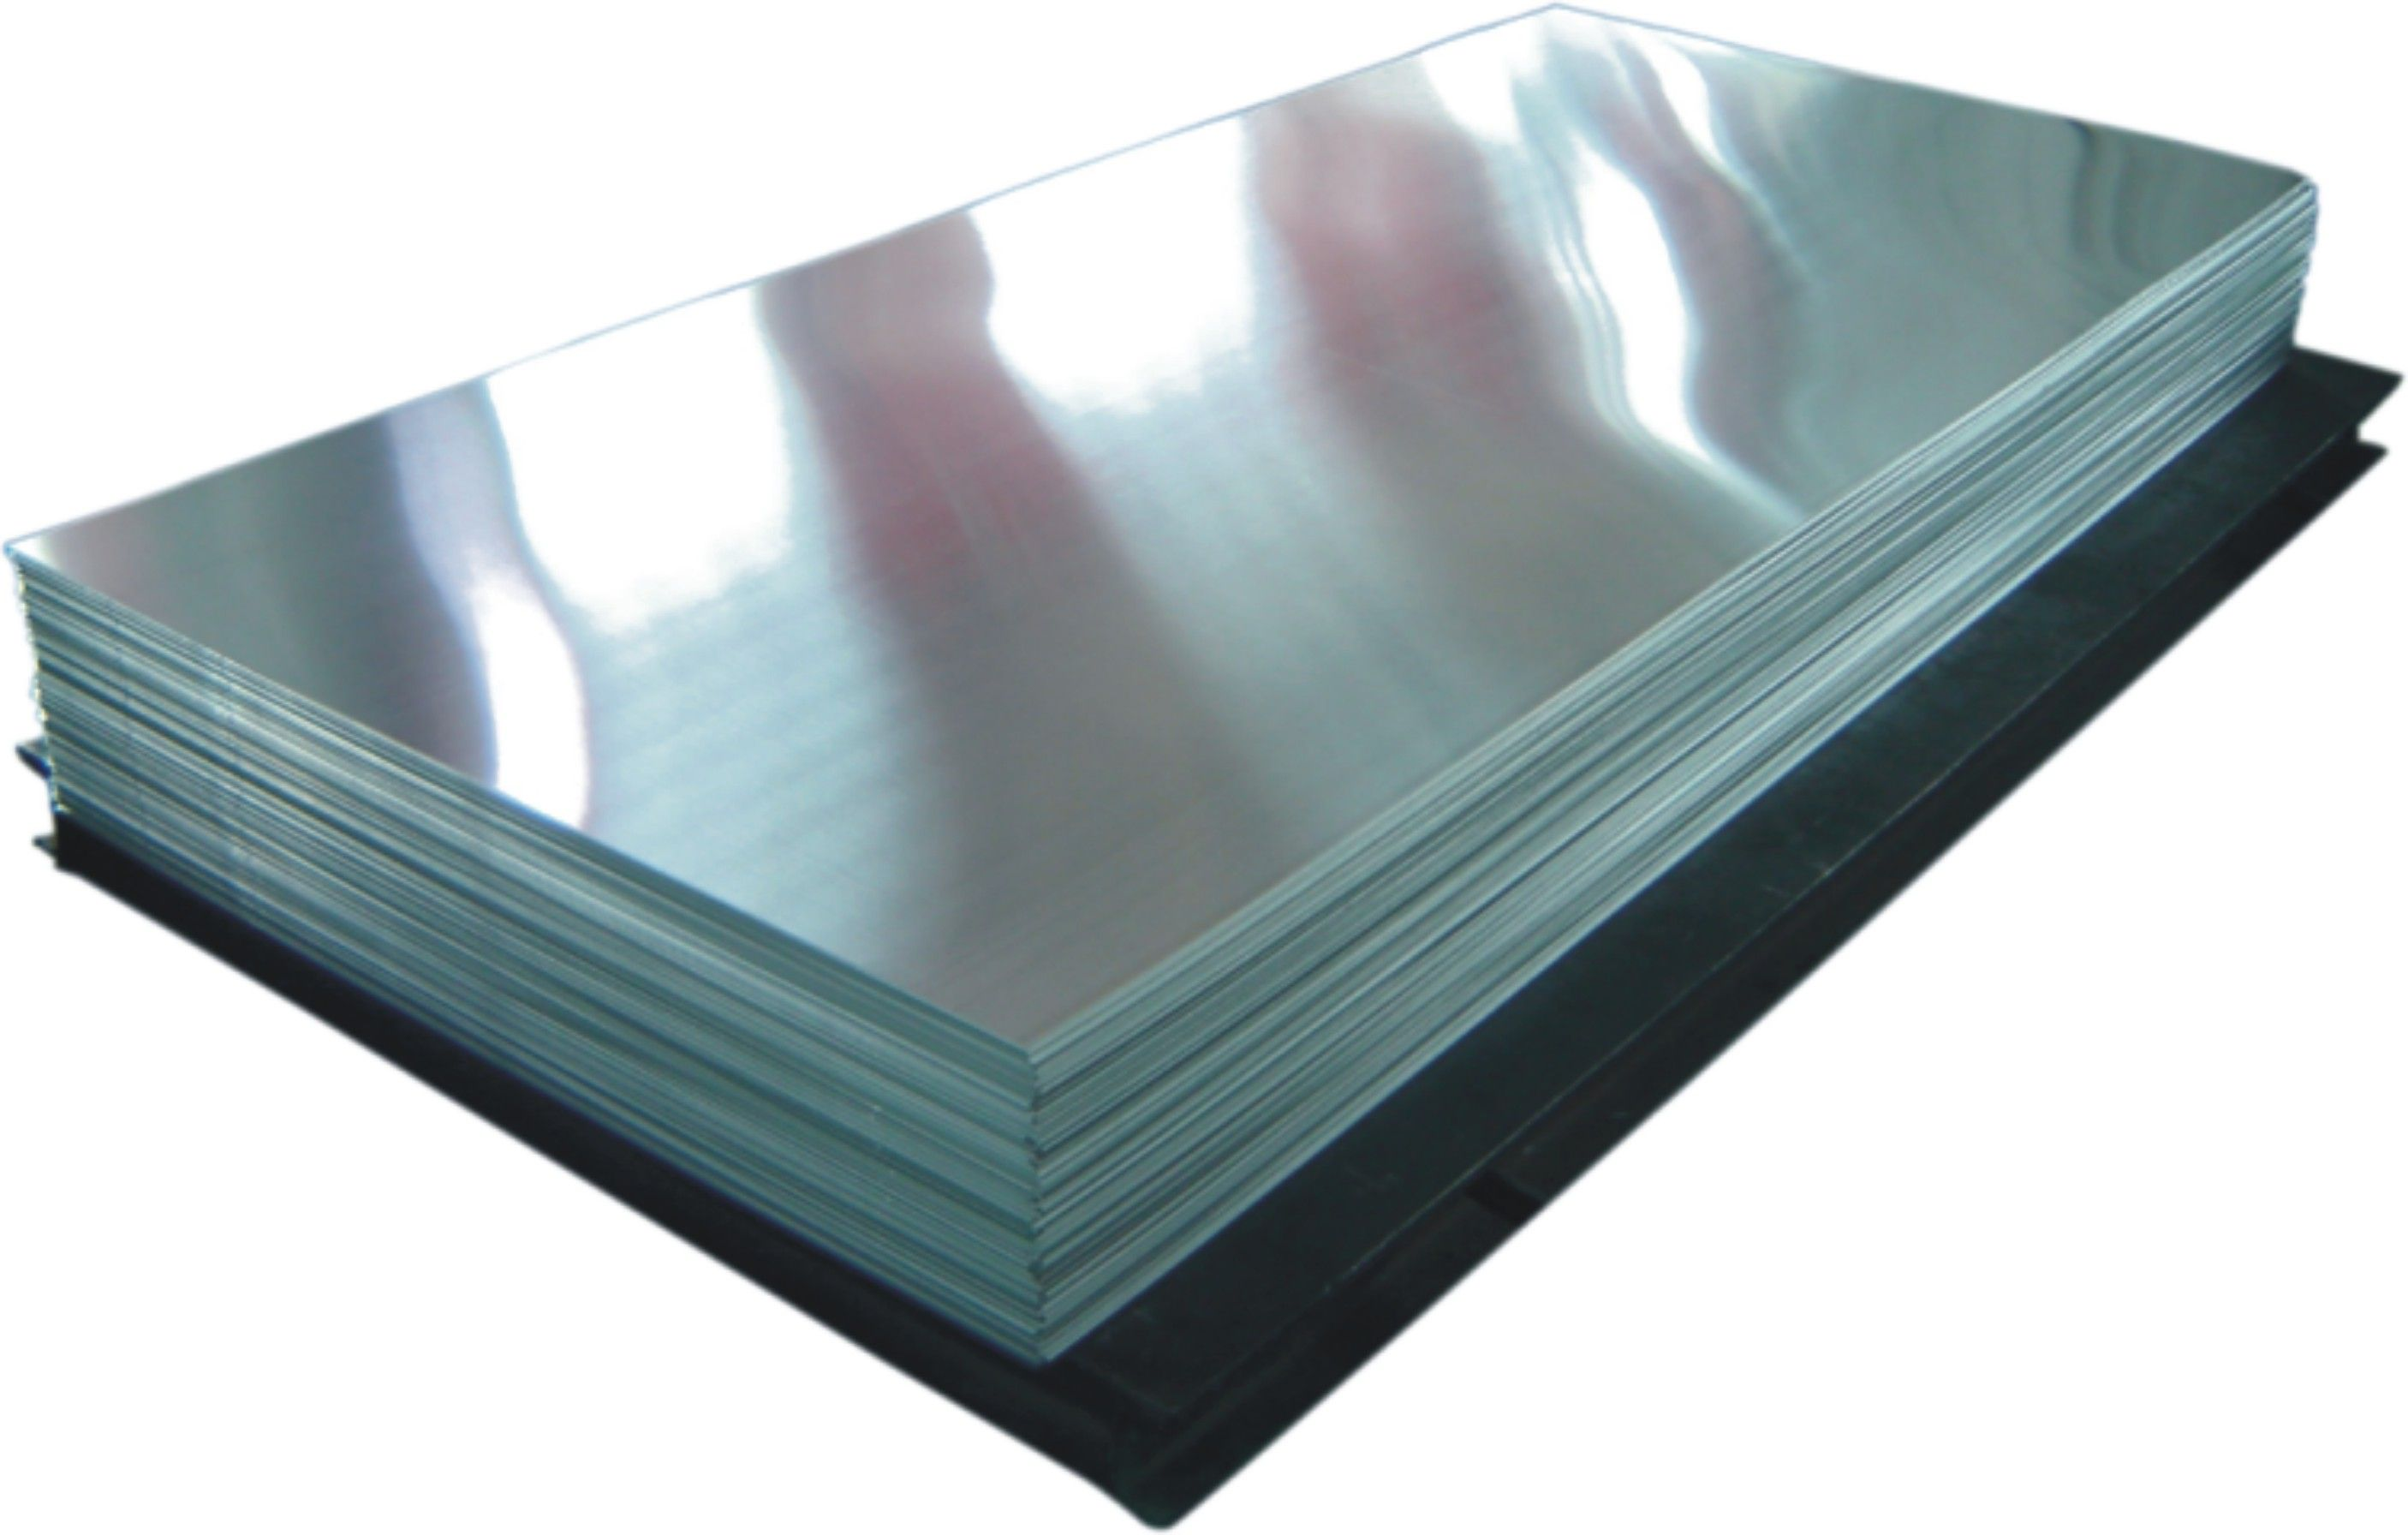 Grade 1000 Series Width 100mm 2300mm Lengh Up To 11000mm Model Aa1050 1060 1100 1070 1080 Stainless Steel Sheet Aluminium Sheet Aluminum Extrusion